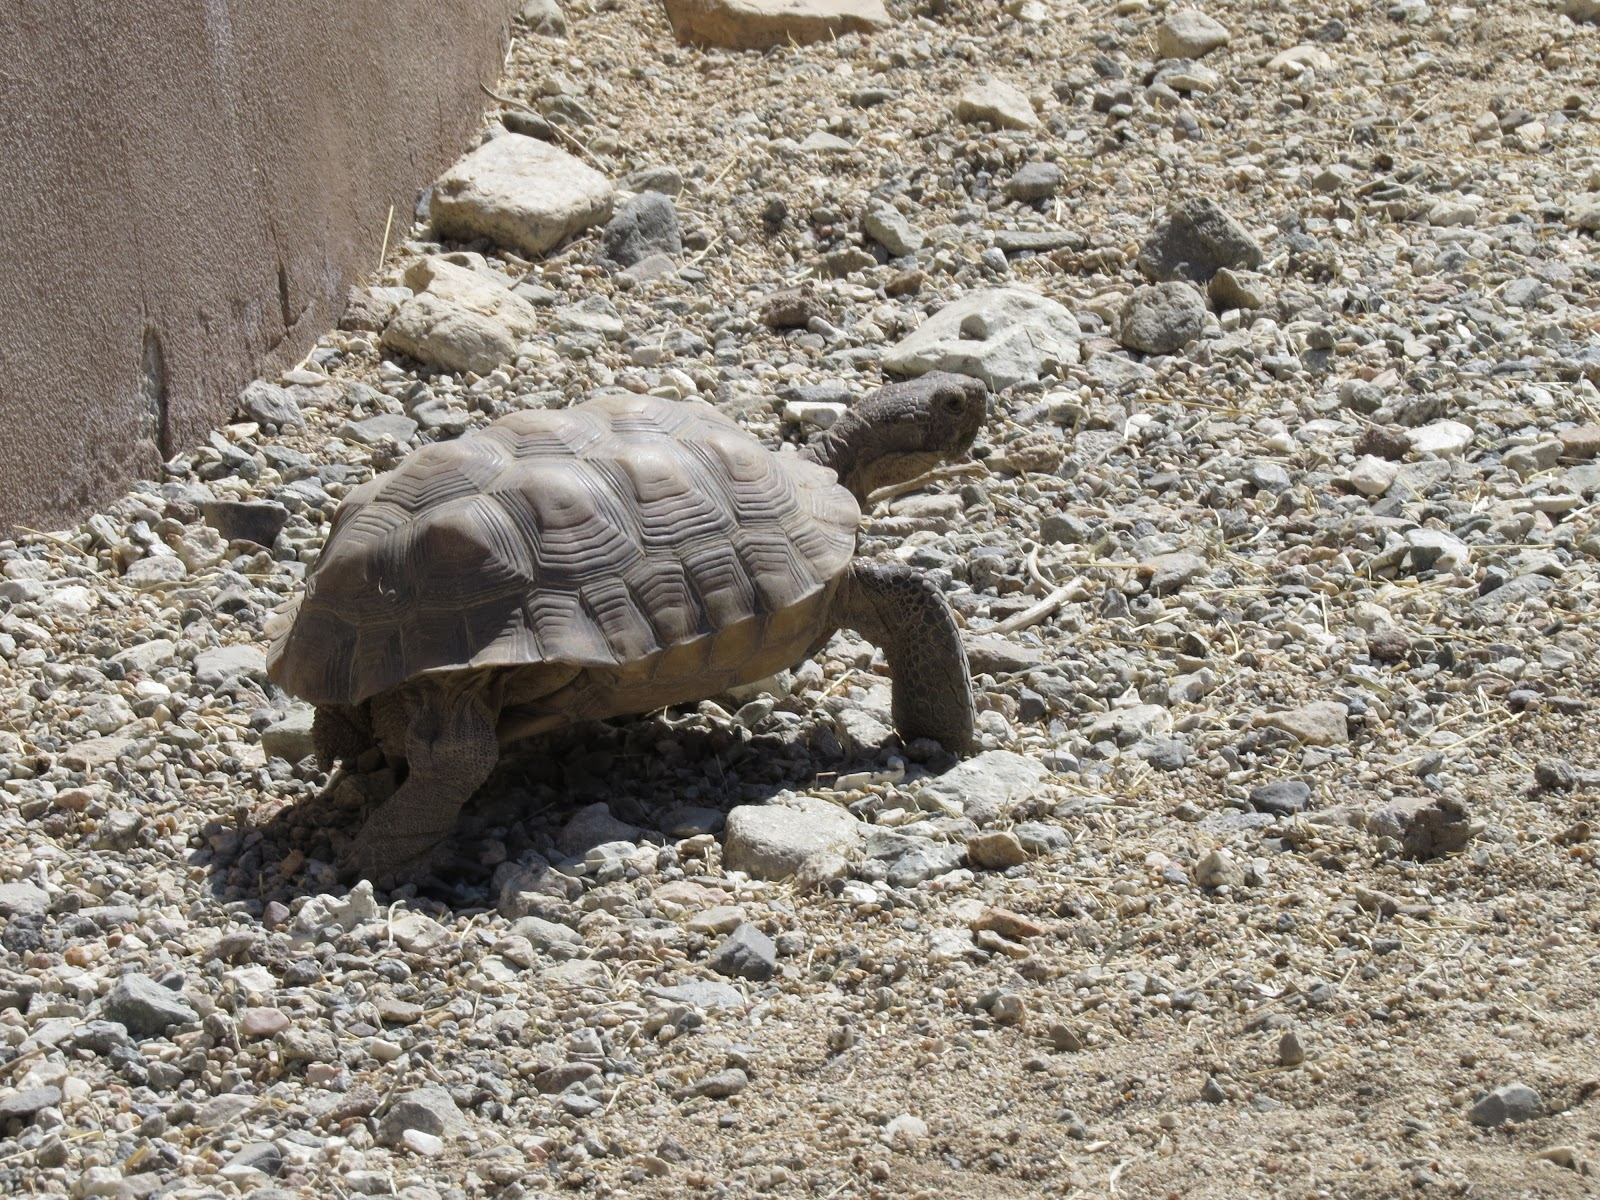 The Living Desert tortoise